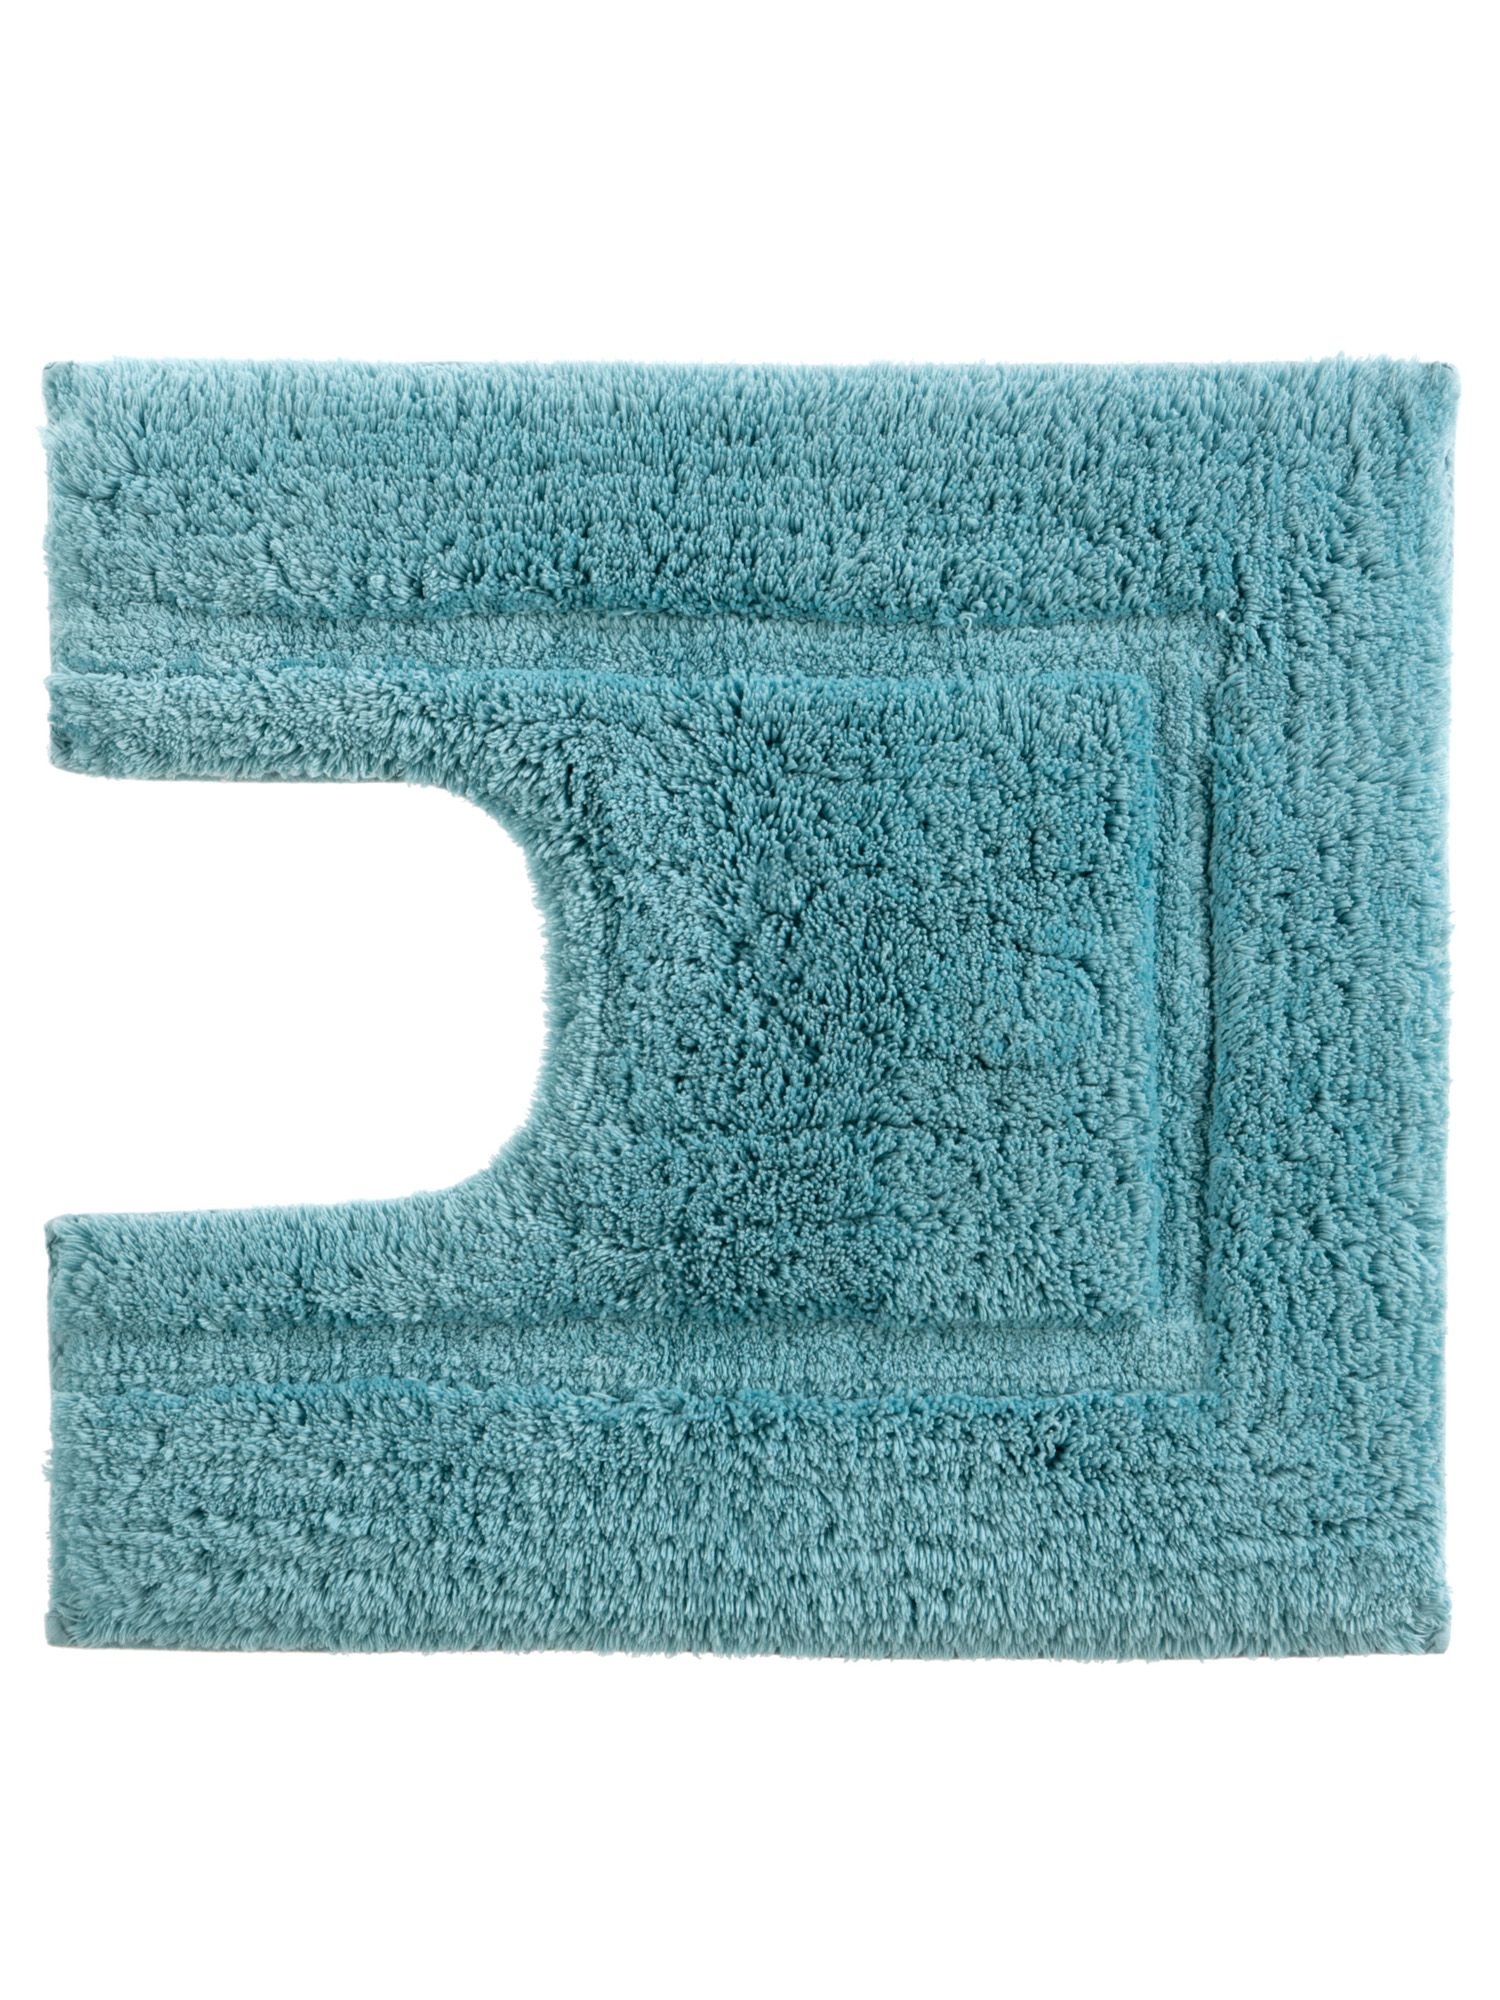 Tufted ped mat 5x55 lagoon by Christy